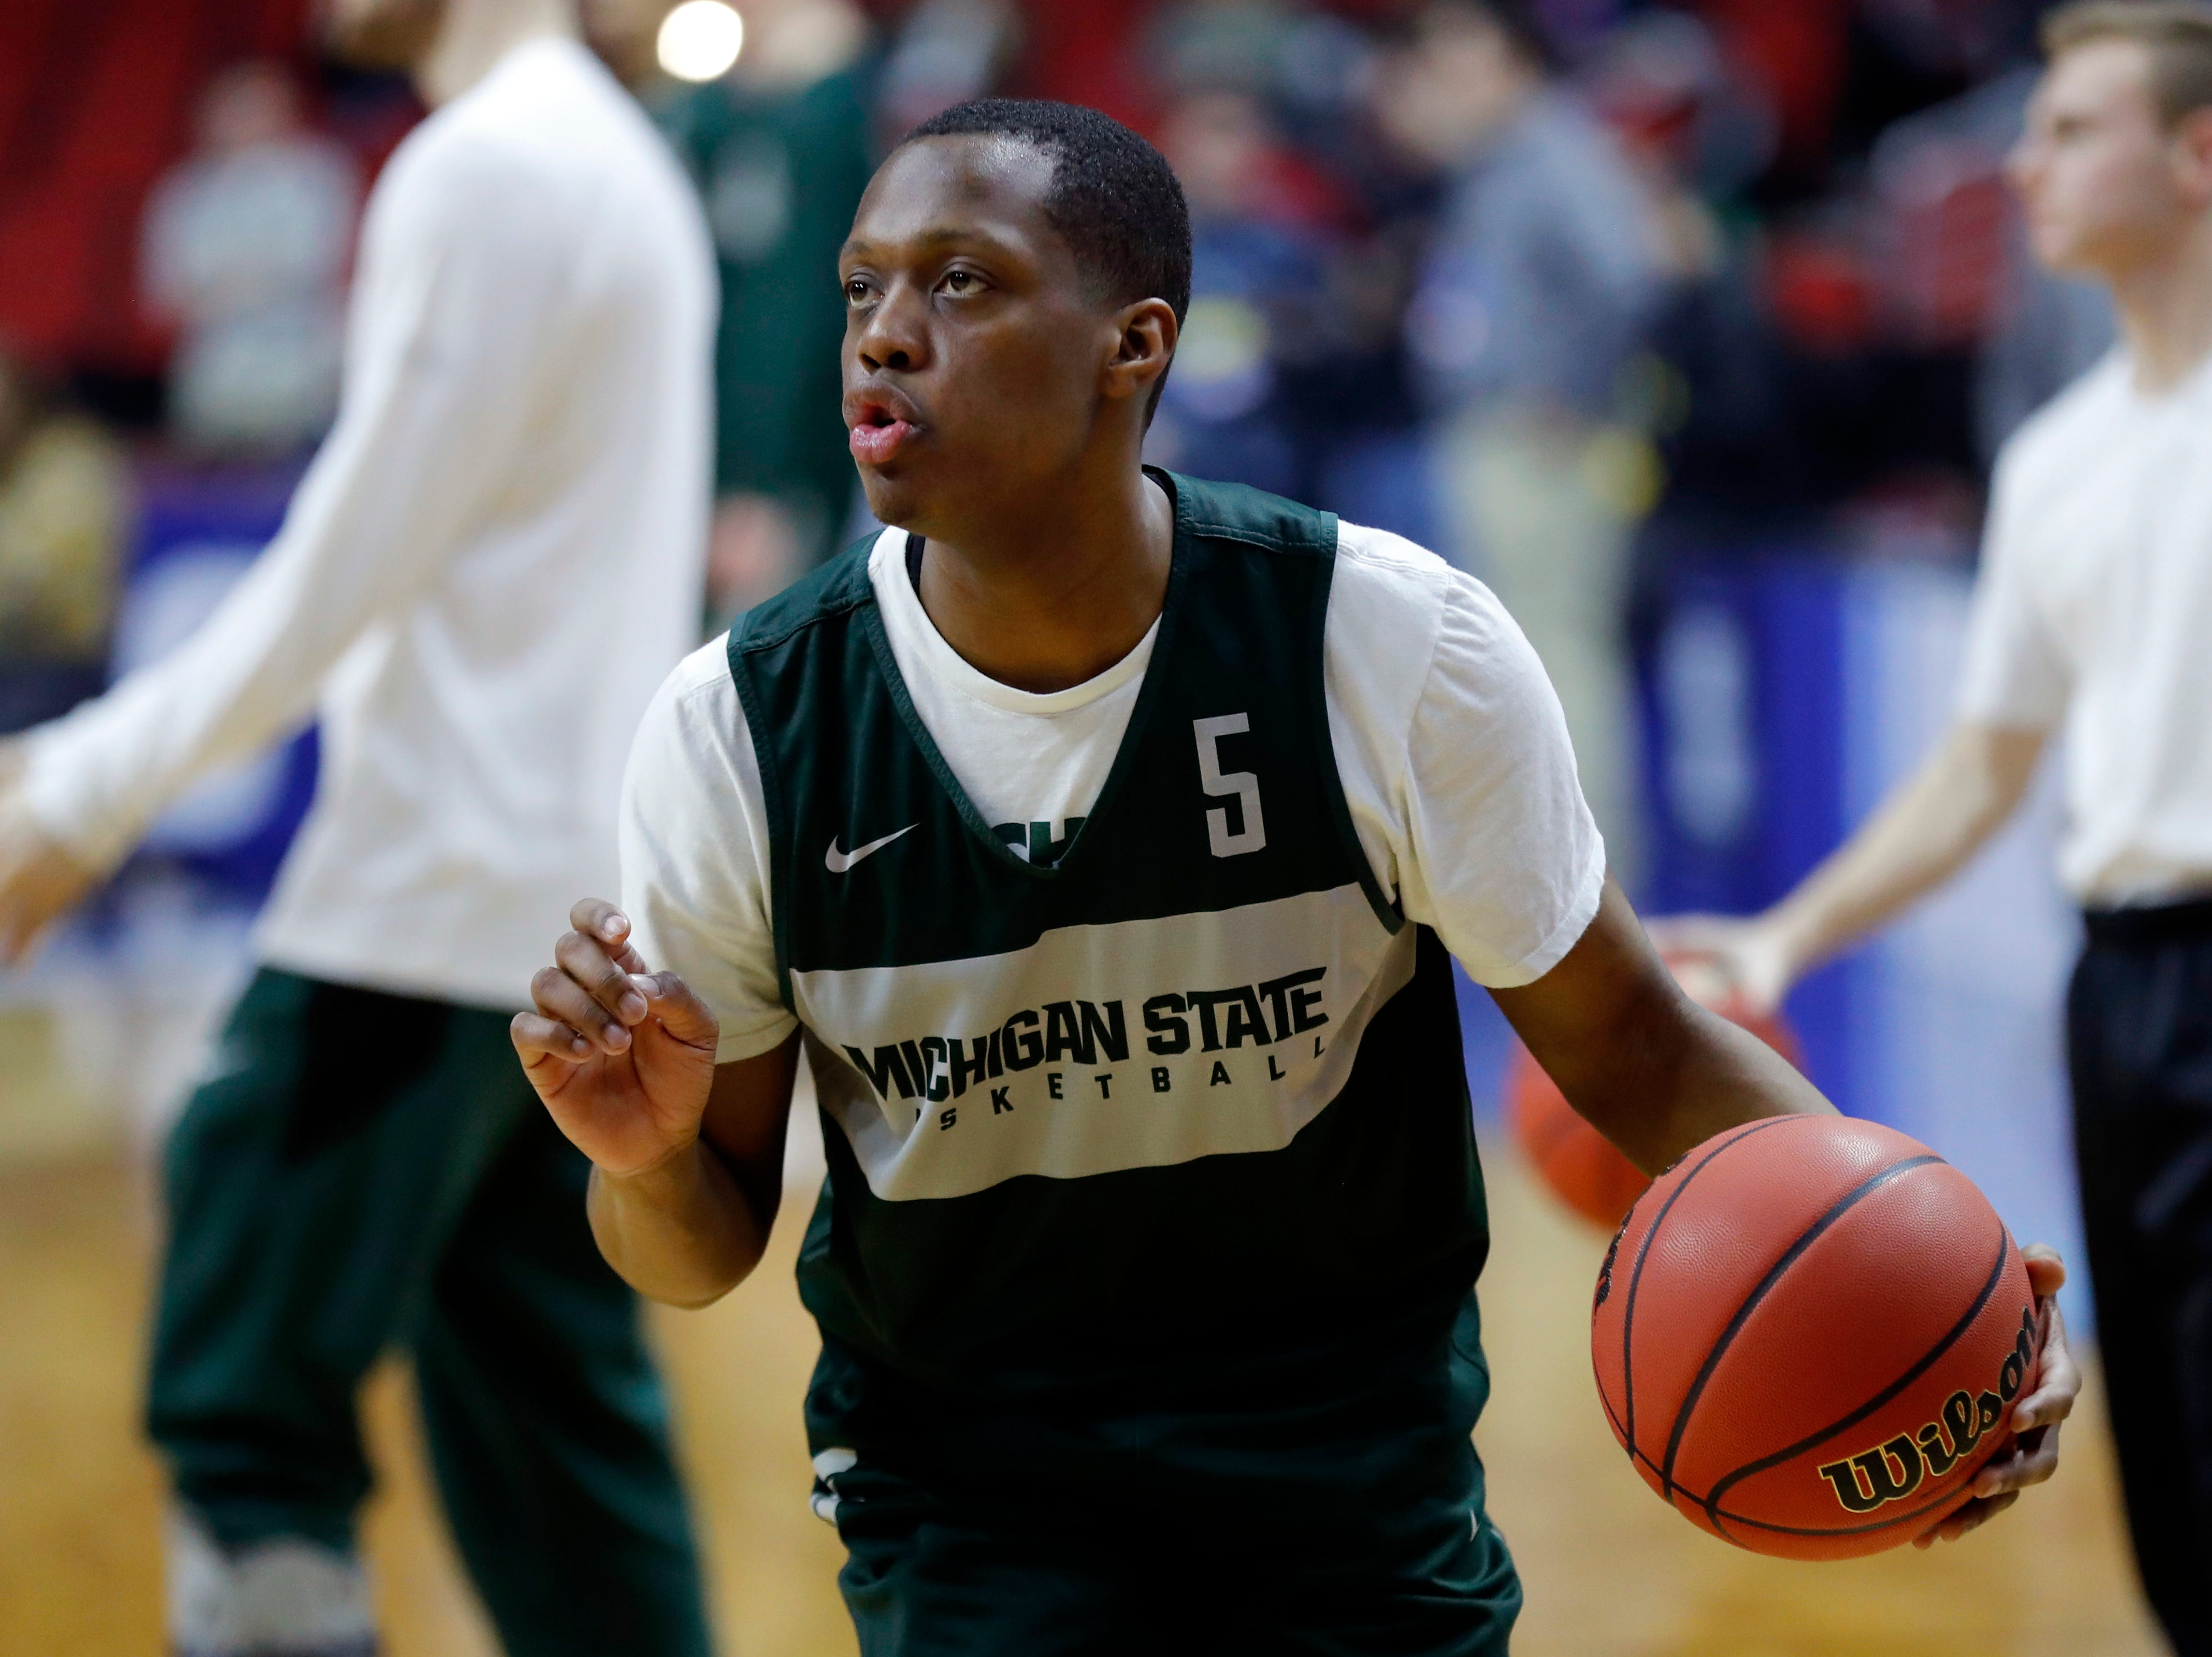 Michigan State guard Cassius Winston drives up court during practice at the NCAA men's college basketball tournament, Wednesday, March 20, 2019, in Des Moines, Iowa. Michigan State plays Bradley on Thursday. (AP Photo/Charlie Neibergall)